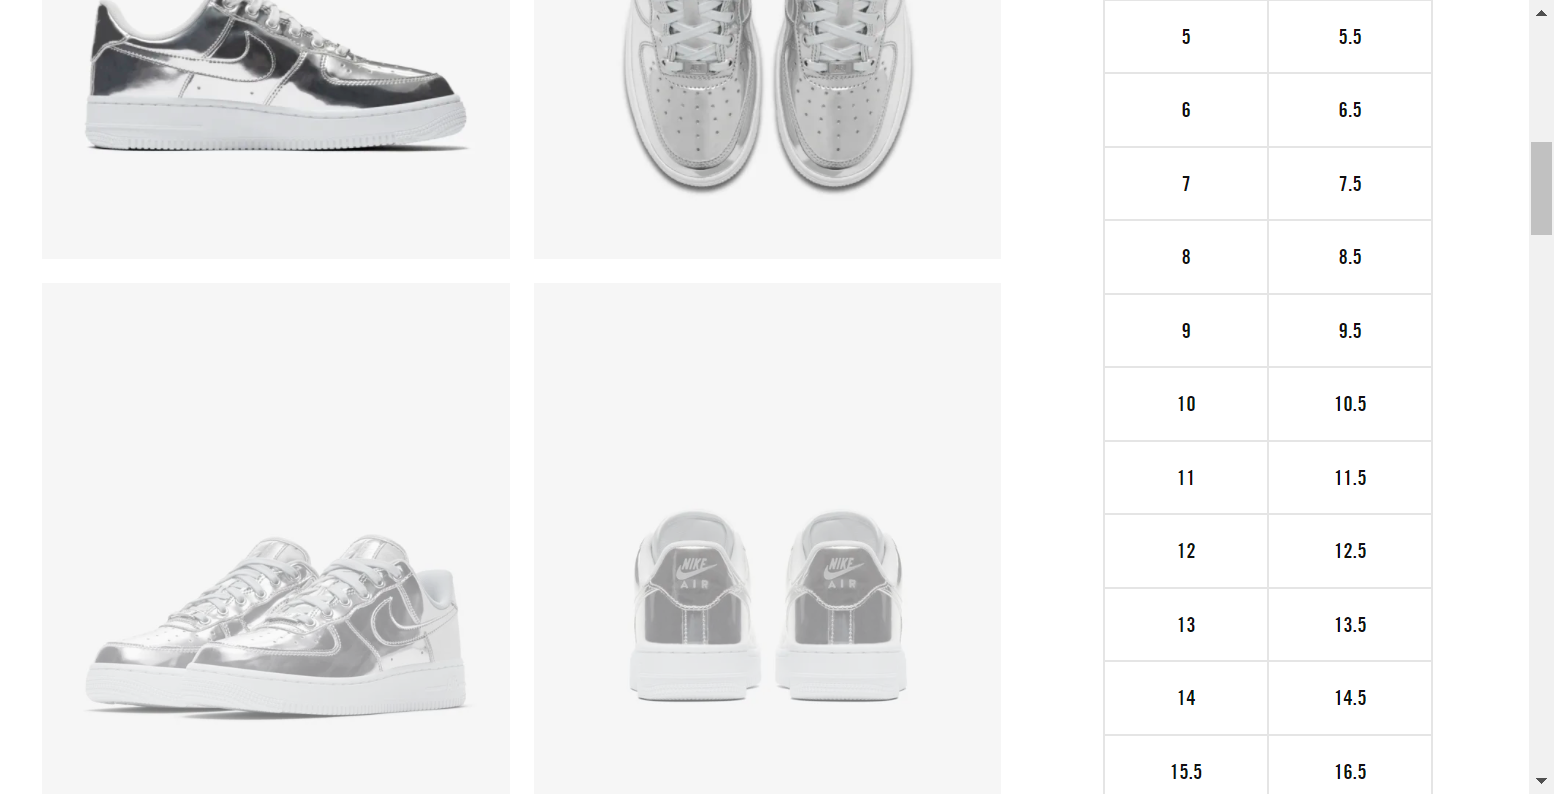 Round 2 - Finding/scrolling to the size selectors